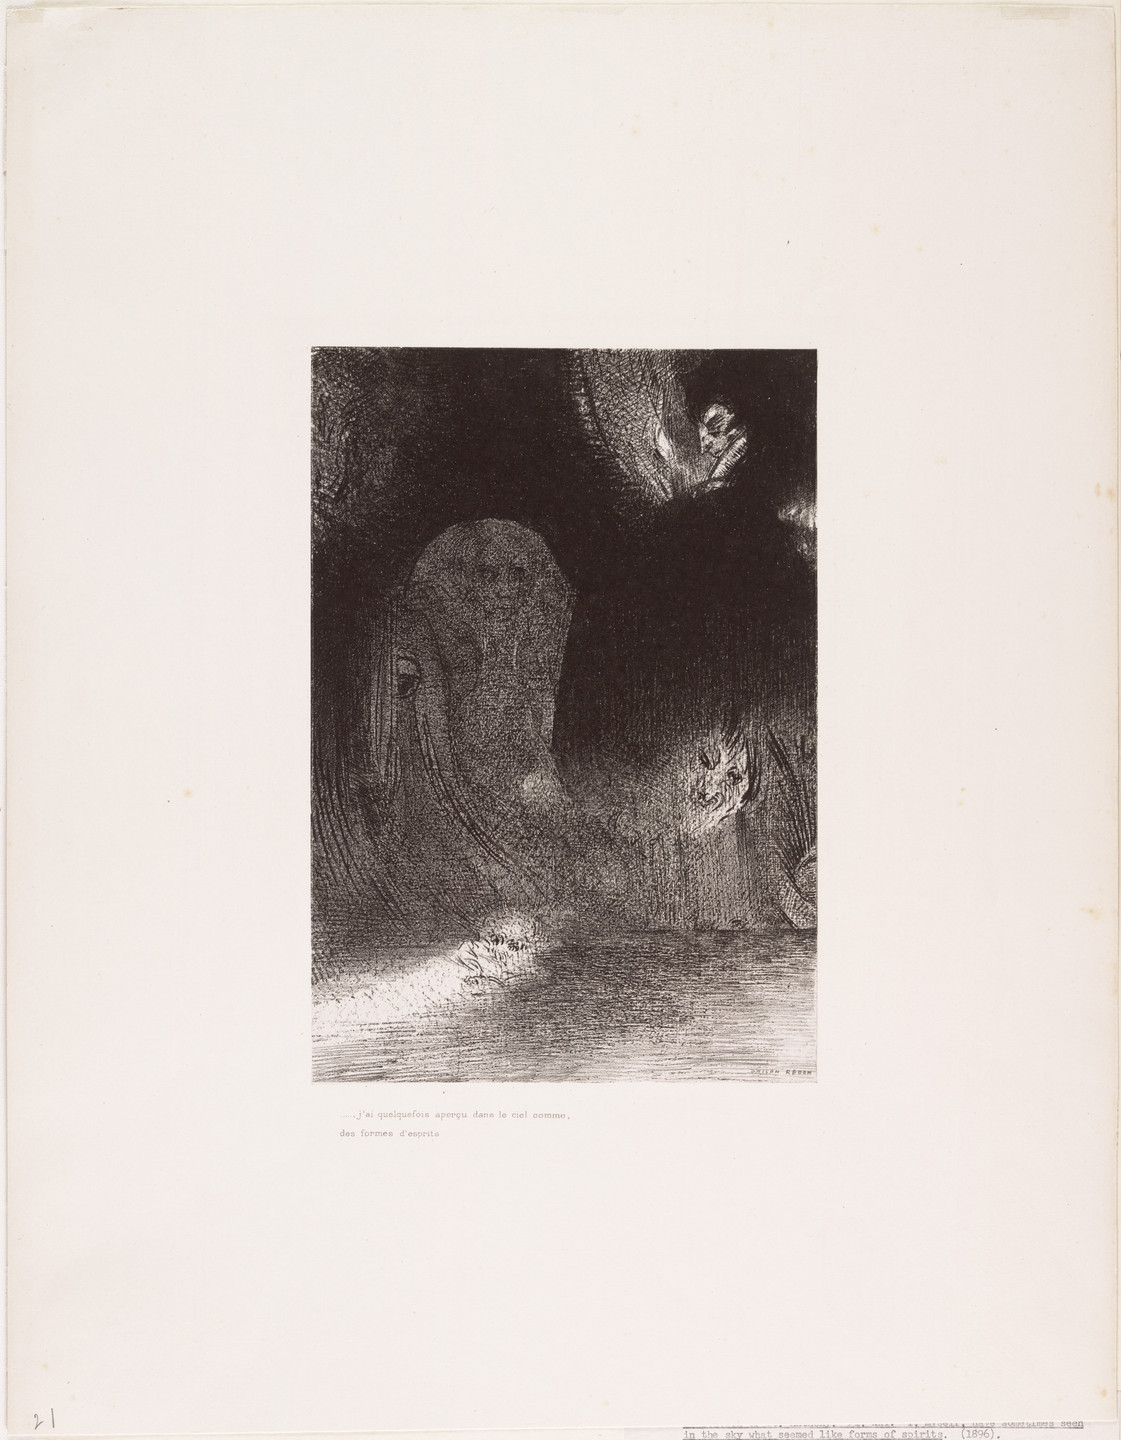 Odilon Redon. The Temptation of Saint Anthony (La Tentation de Saint-Antoine) (third series). 1896